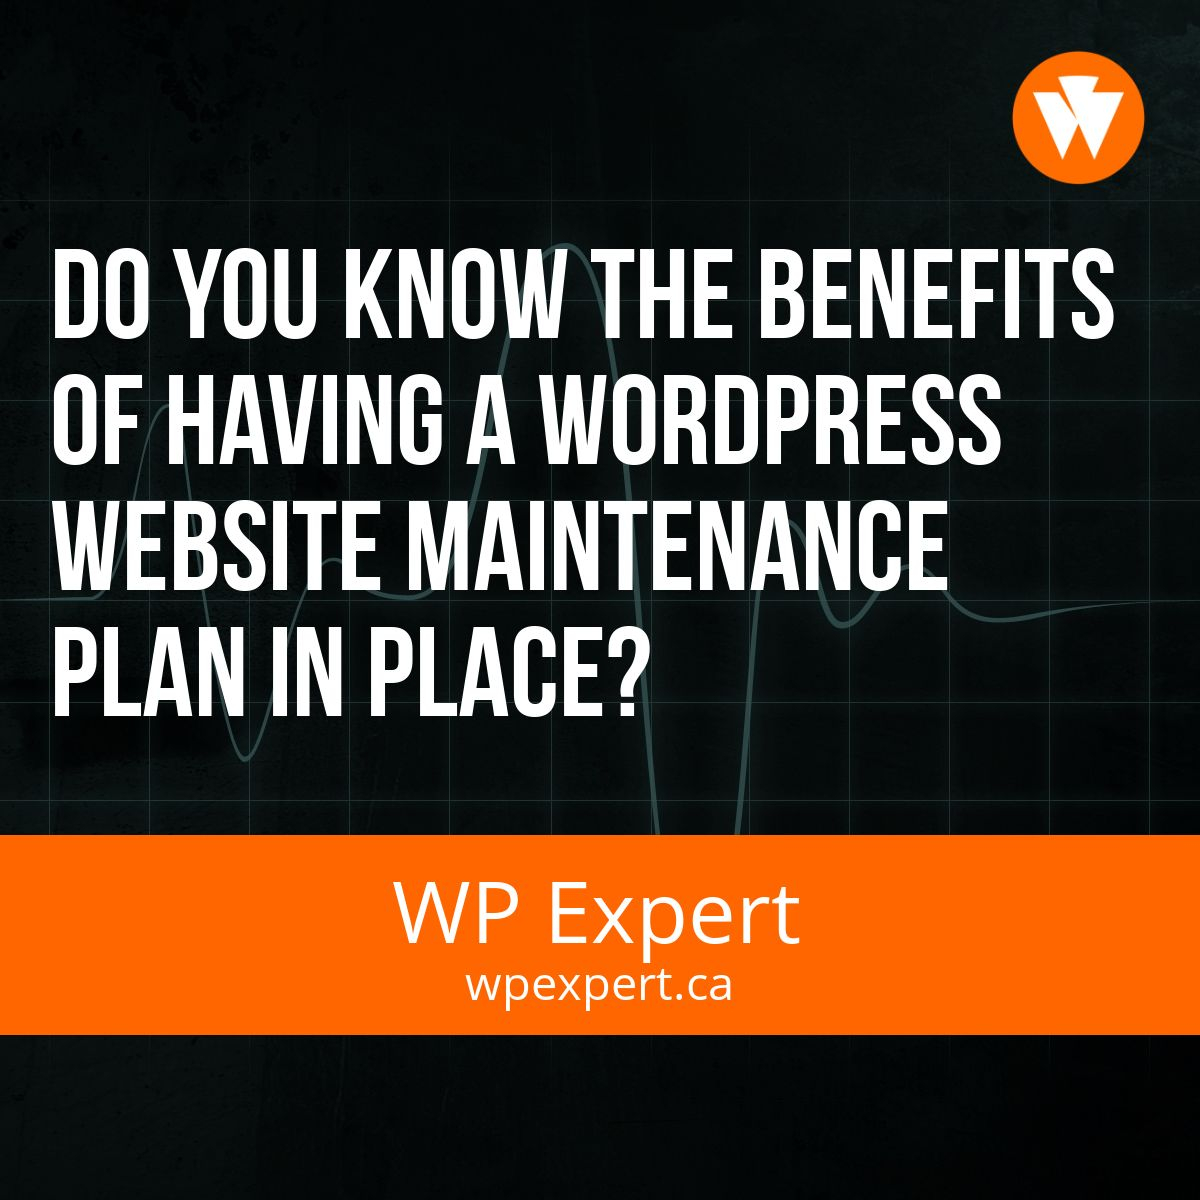 Do you know the benefits of Having a WordPress Website Maintenance Plan in Place